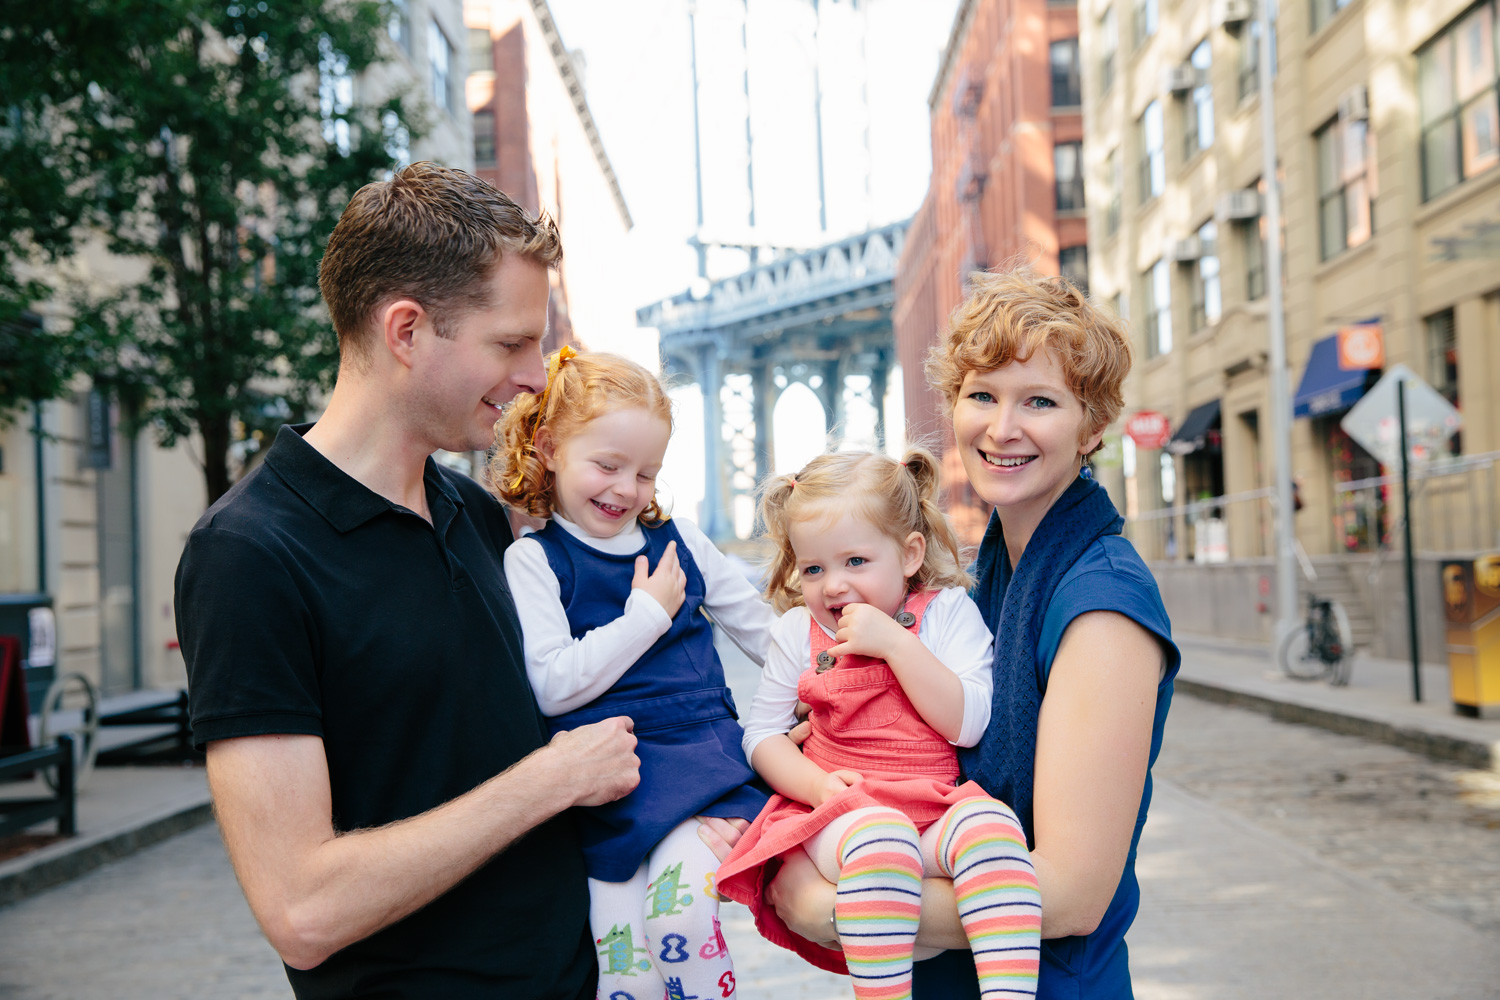 Brie-Mulligan-NYC-Family-Photographer-99.jpg